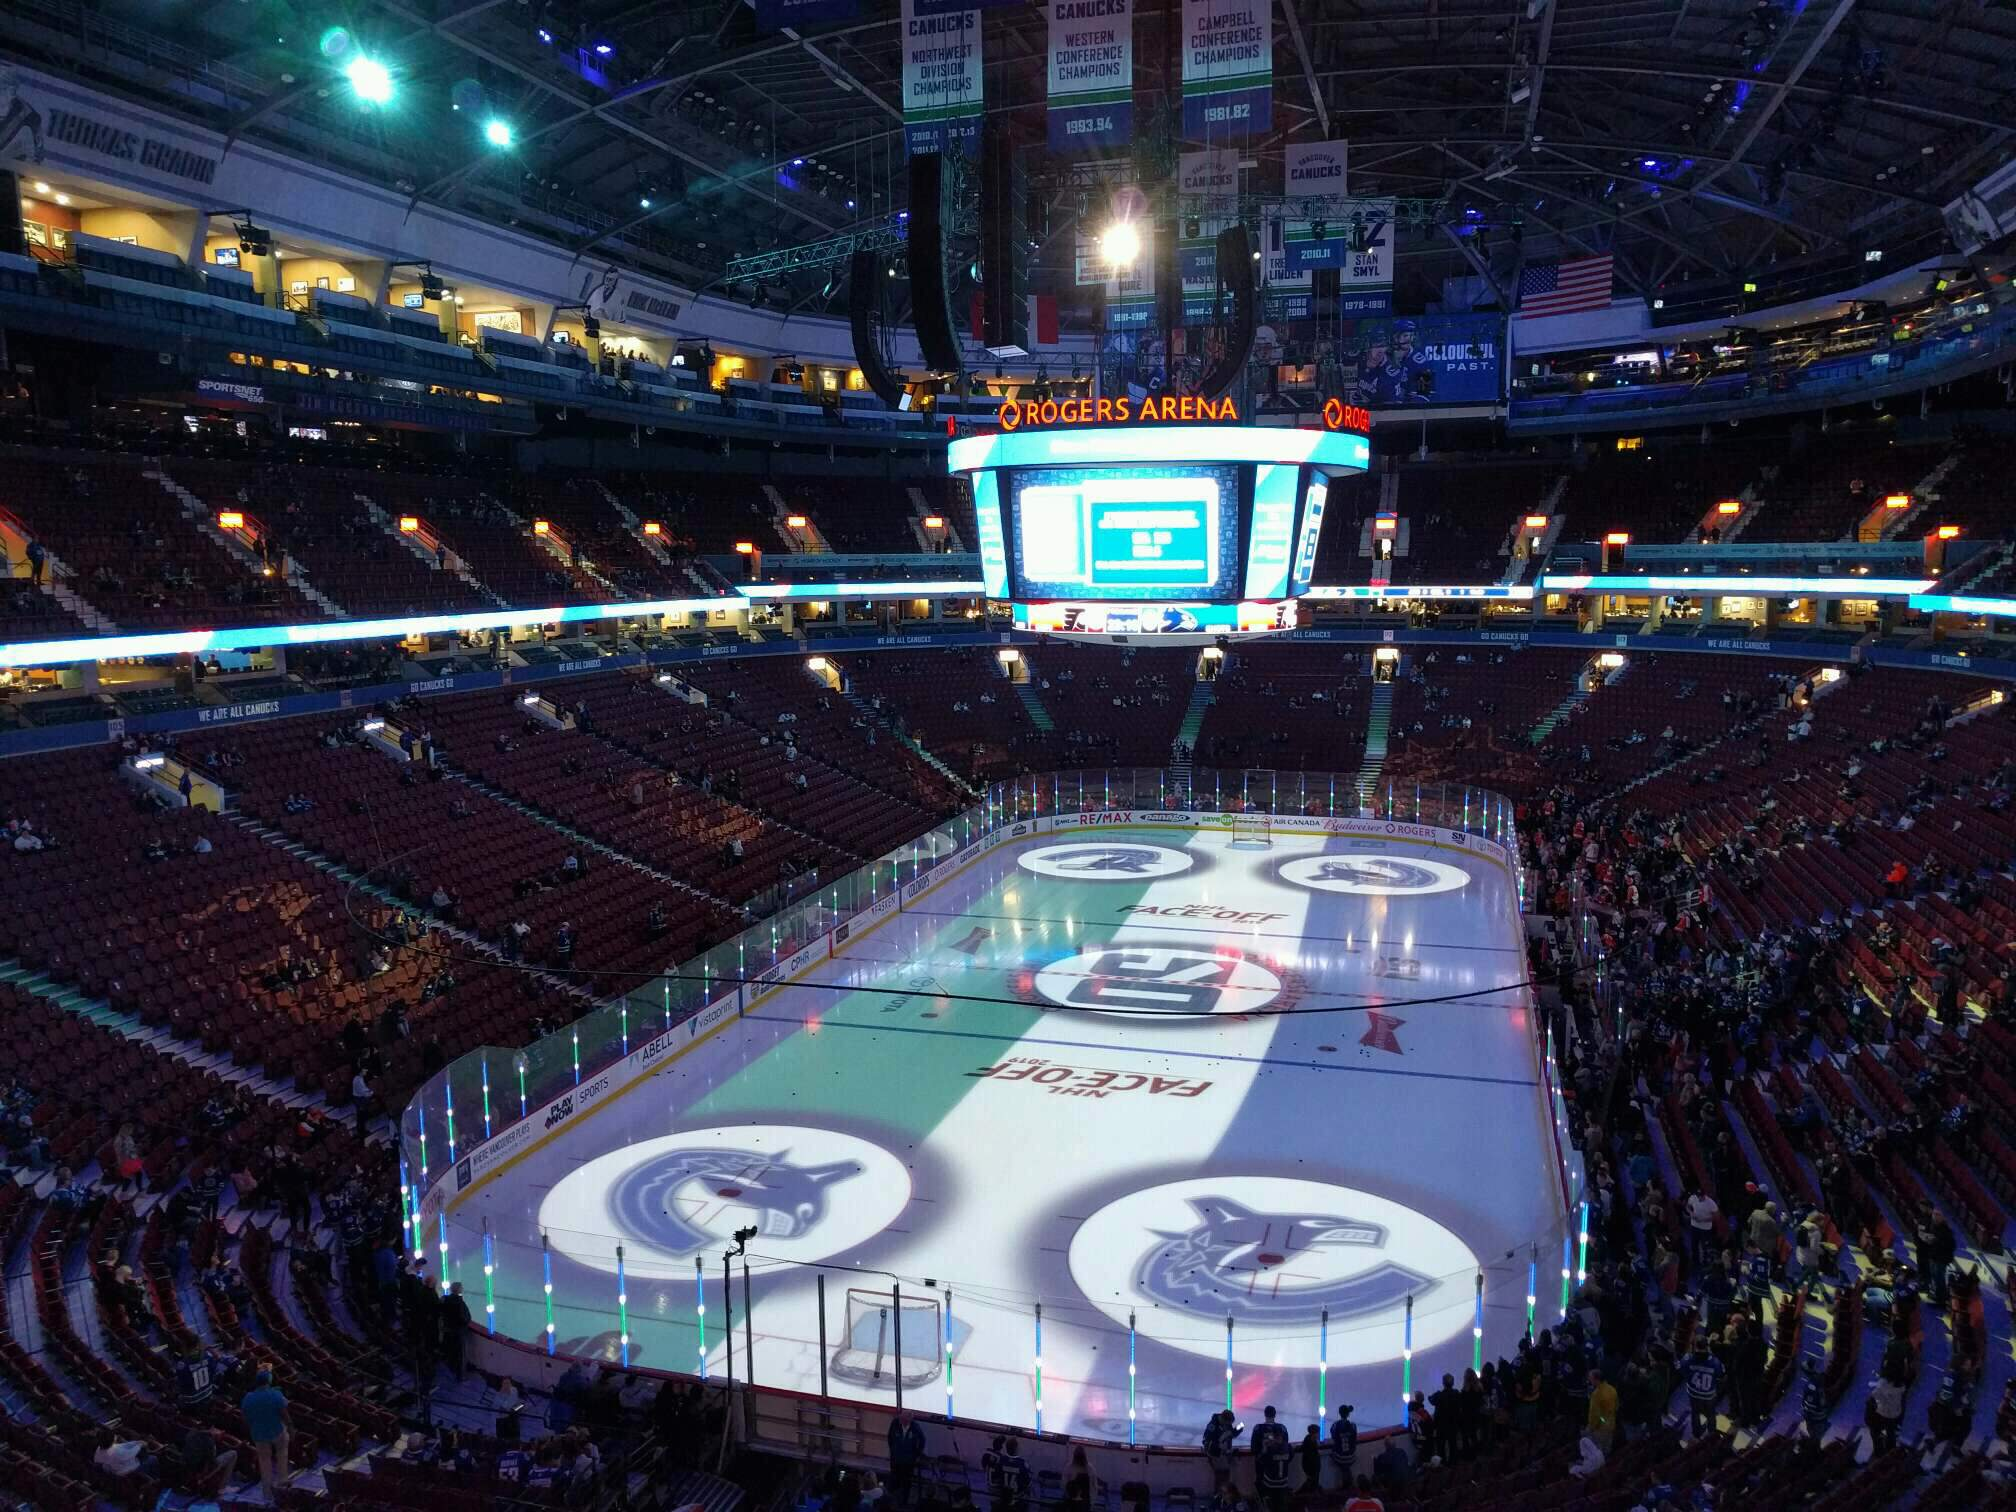 Rogers Arena Section 329 Row 4 Seat 107